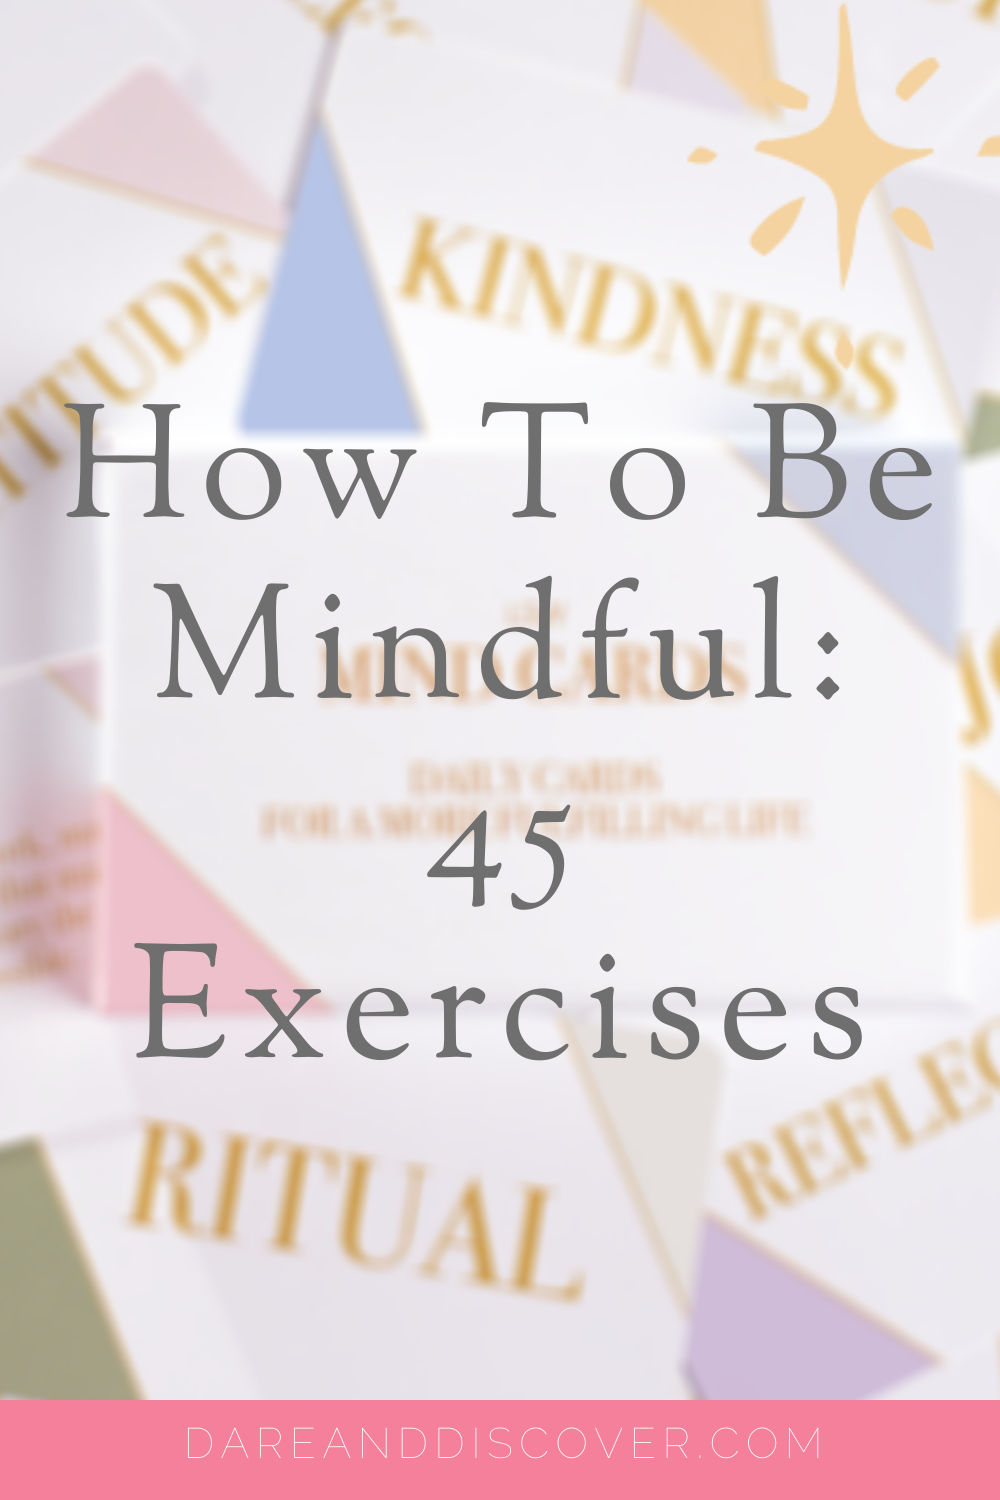 I often get stuck for ways of how to be mindful. I reviewed the LSW Mind Cards by Cognitive Hypnotherapist Lili Sinclair-Williams as I wanted to increase my ways of being mindful. If you're looking for ways to increase your mindfulness practice, these cards are a great addition to help you be more mindful | Mindfulness Practice | How To Be Mindful | Mindfulness Exercises | Mindfulness Activities | #Mindfulness #Mindful #SelfCare